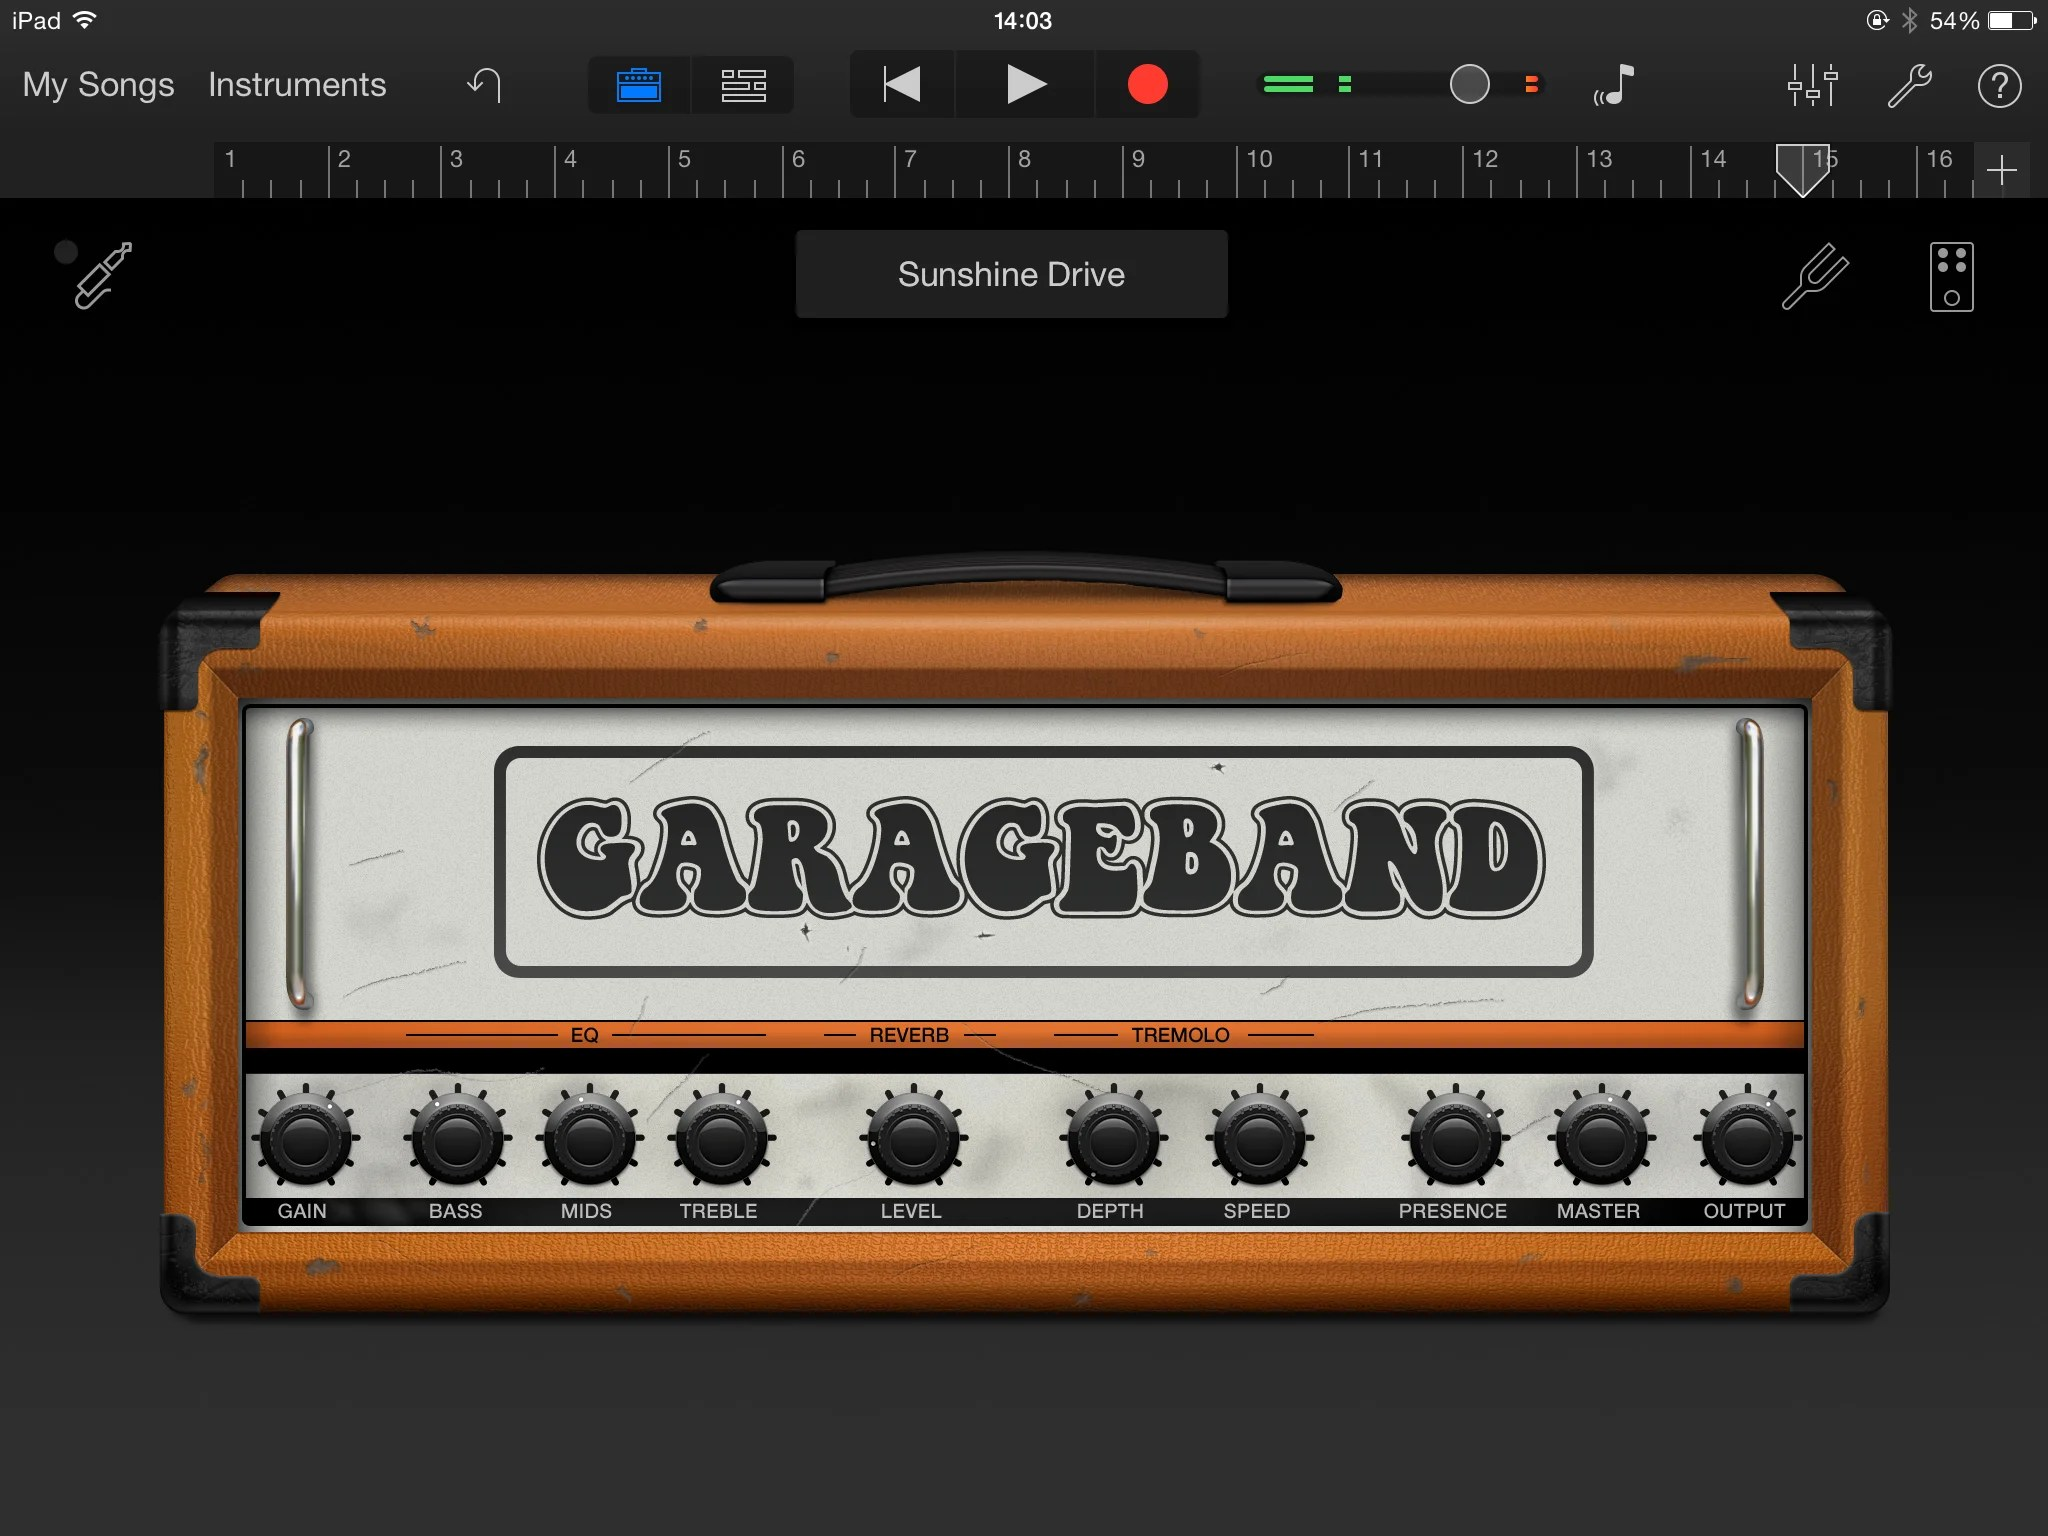 Fan Garageband Garageband Tutorial How To Use Garageband On Ipad Iphone Den